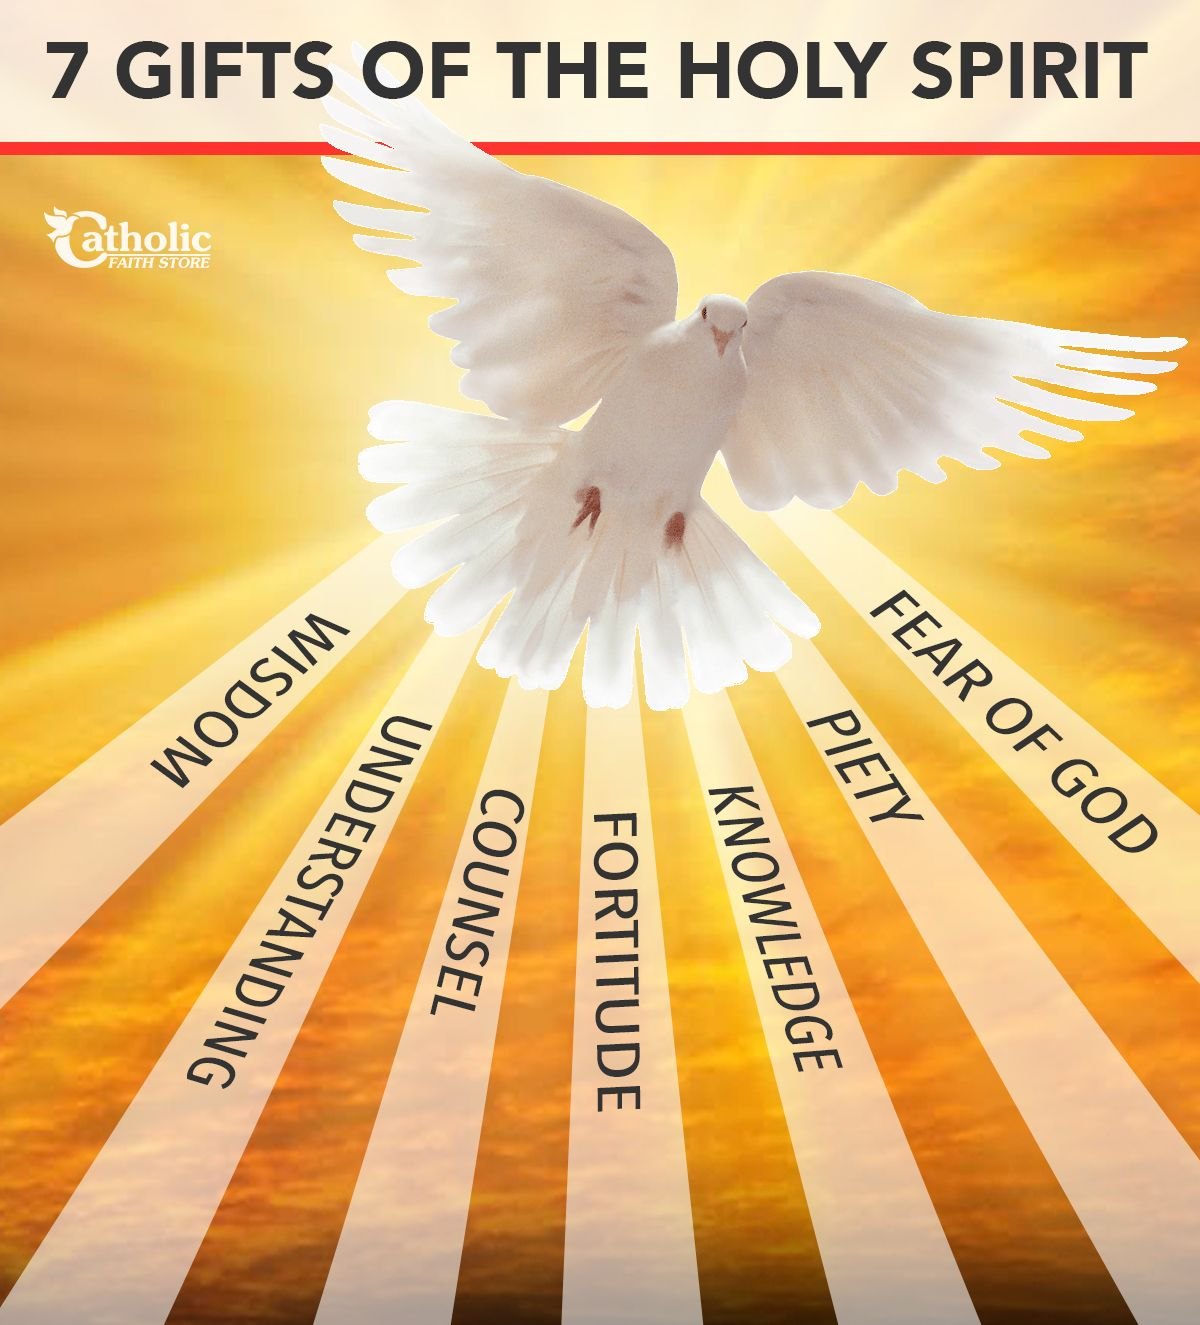 7 gifts from the holy spirit set the intention